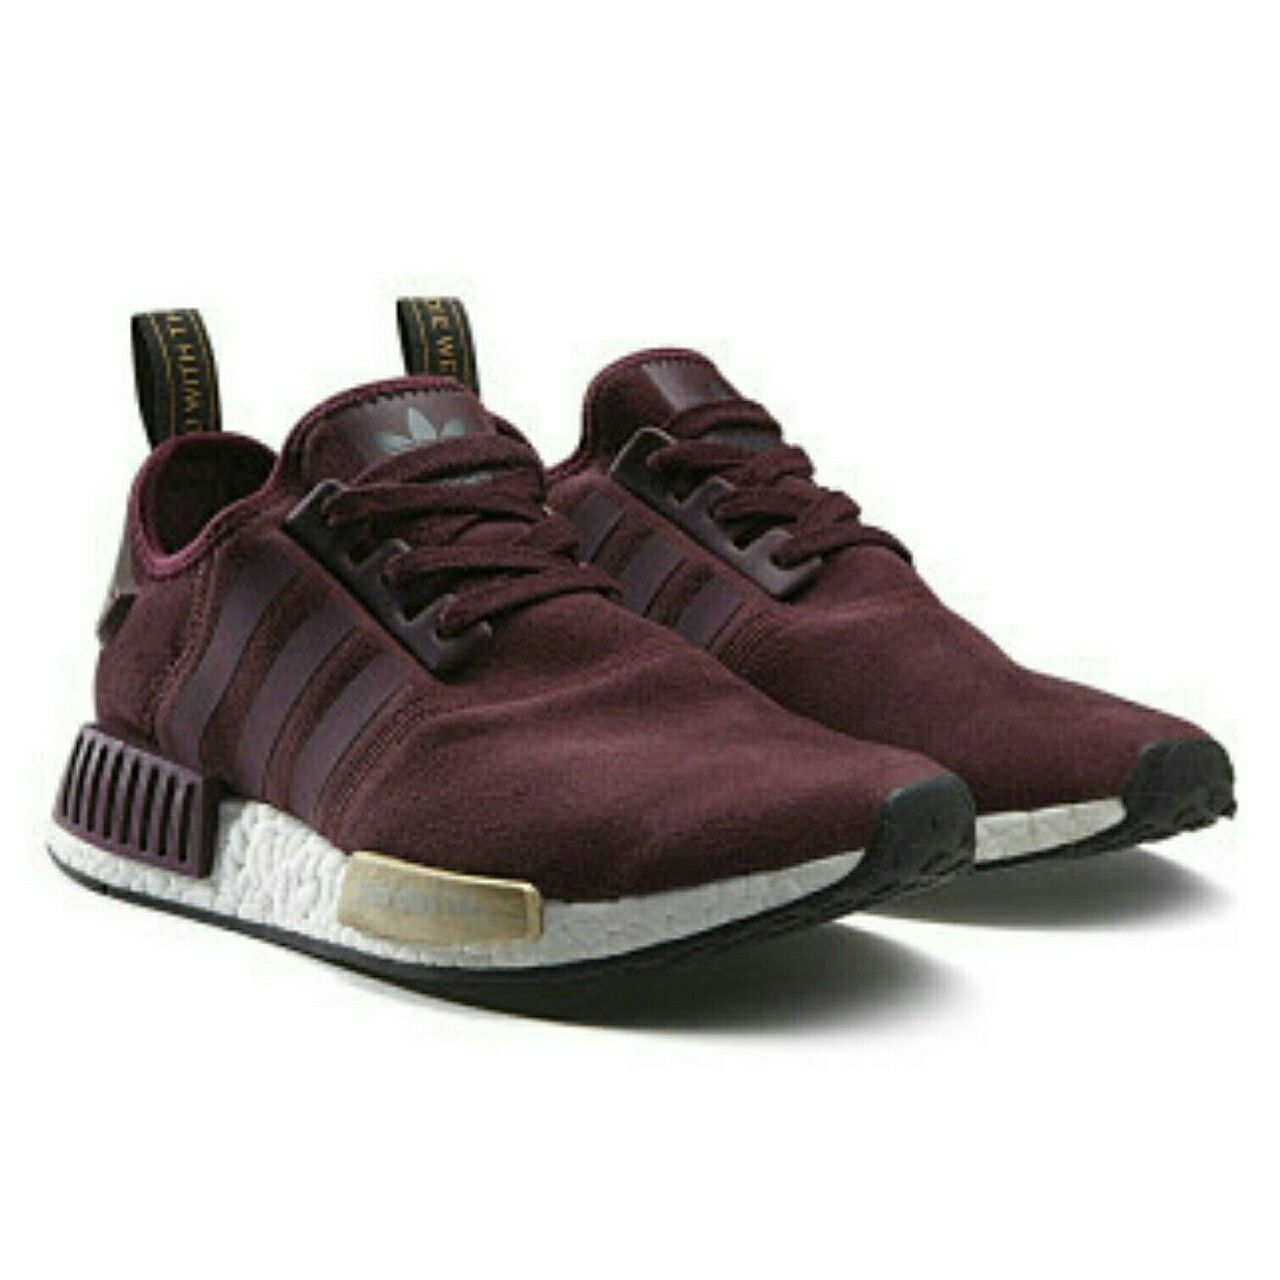 finest selection d5578 b7730 Marsala ADIDAS   Dark Red   Pinterest   Adidas nmd r1, Adidas shoes ...